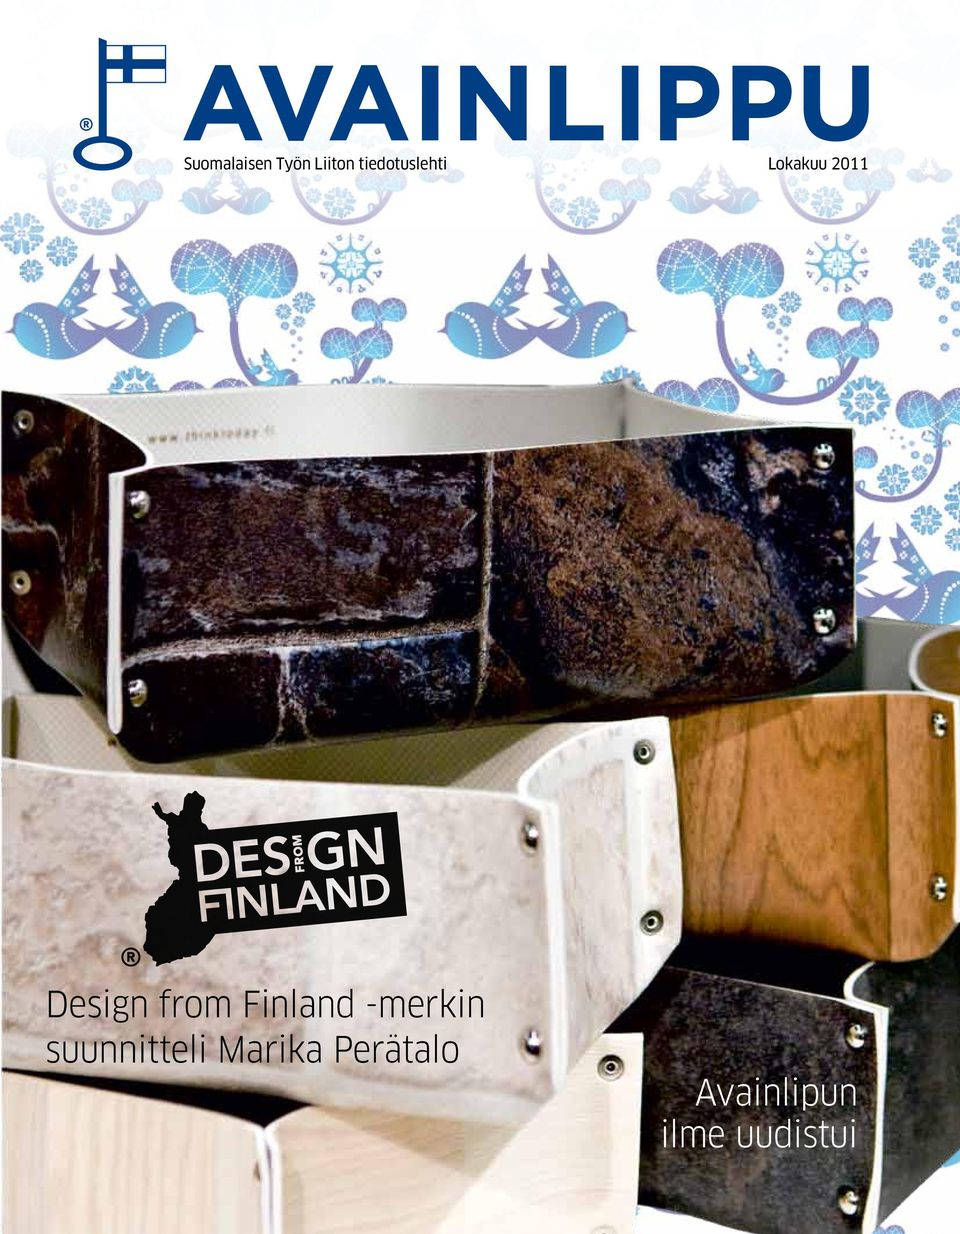 Design from Finland -merkin